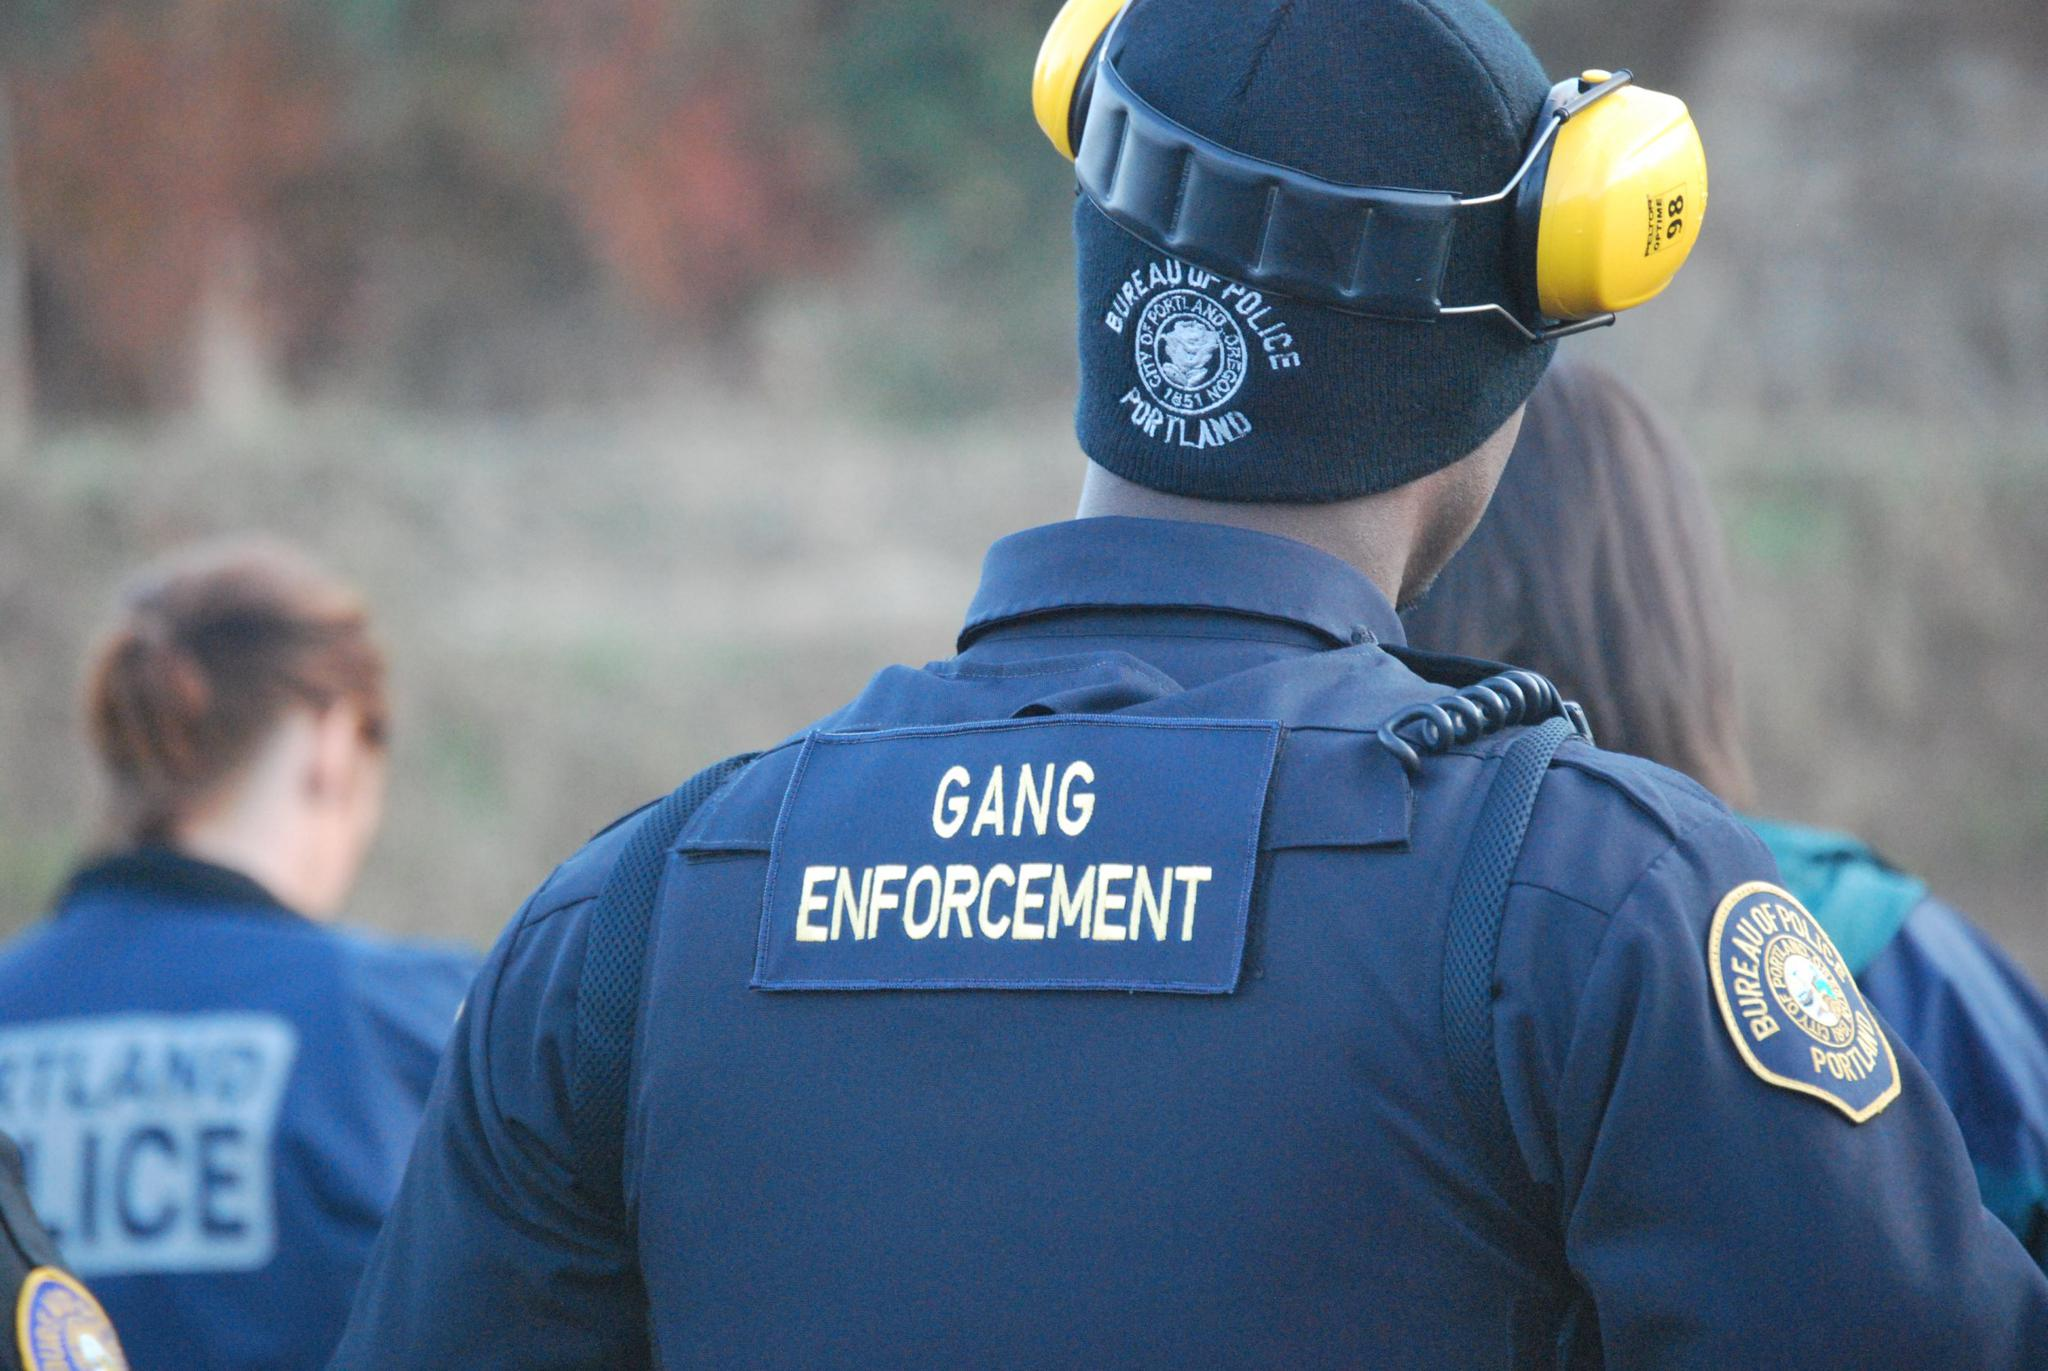 Last week the Portland Police Bureau announced that it would end its policy of documenting people as gang members, in what experts say appears to be the first such move by a police department in recent years.